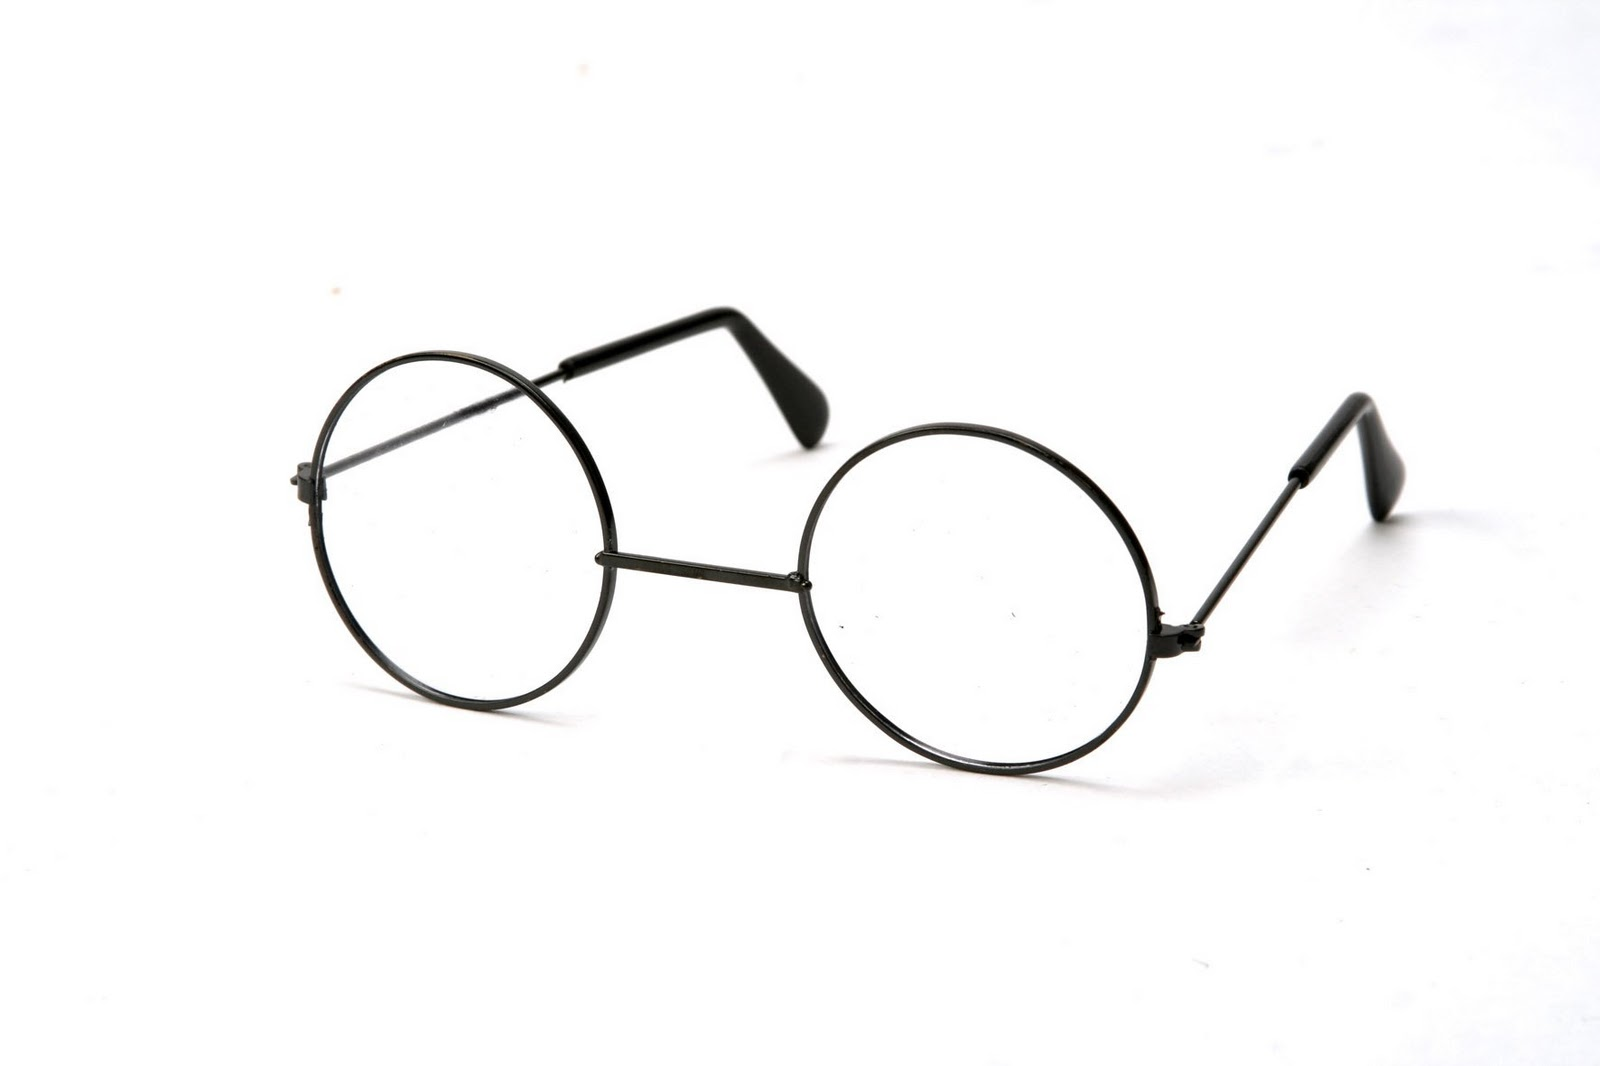 harrypotter-glasses | Clipart Panda - Free Clipart Images